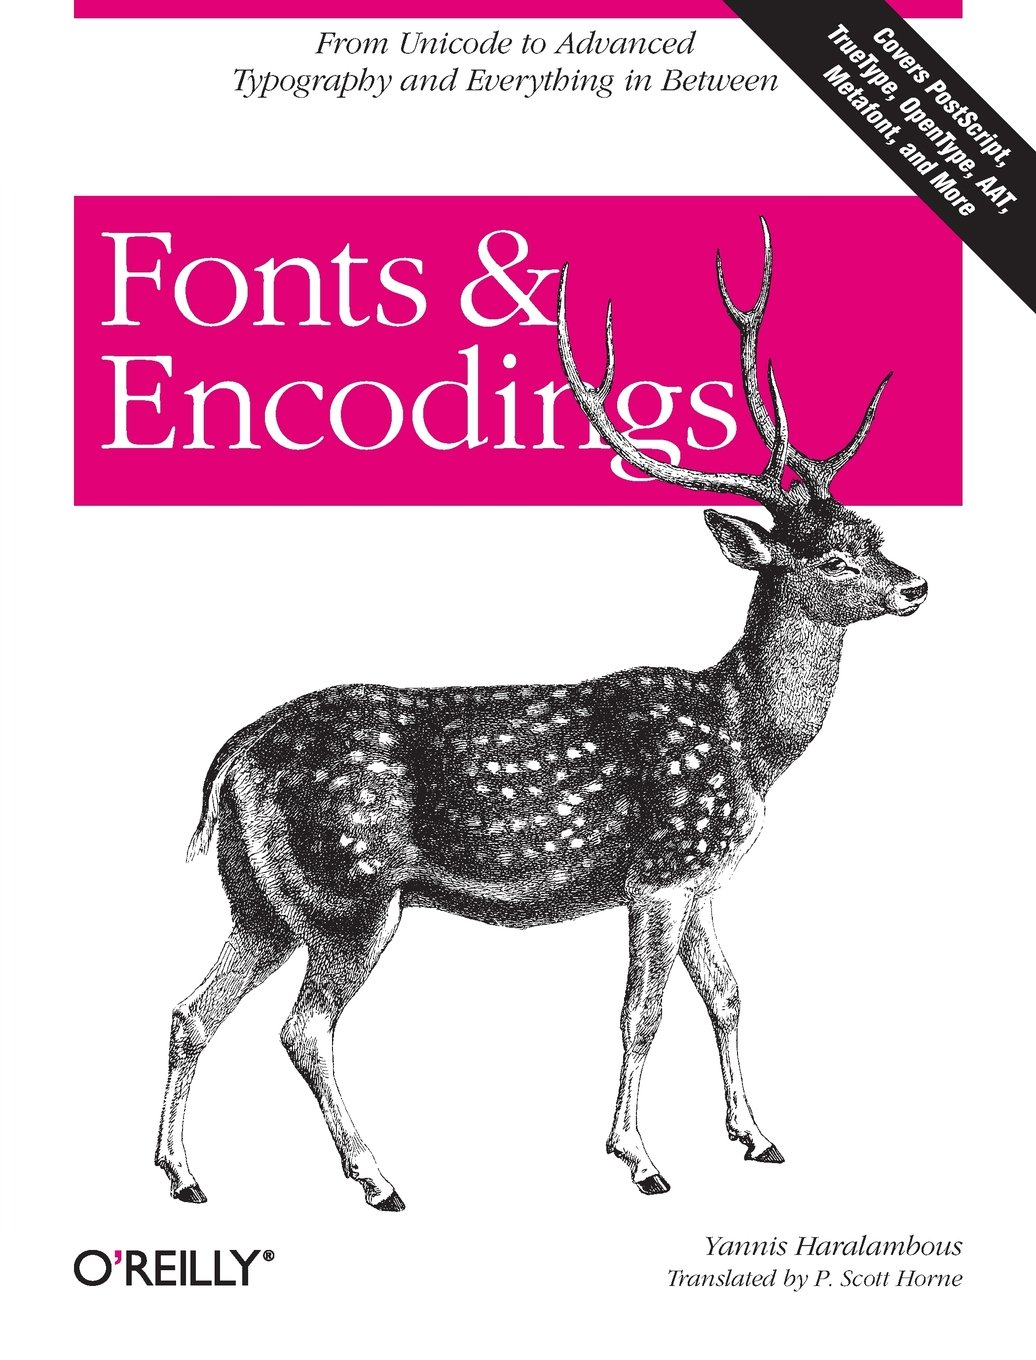 Fonts & Encodings: From Advanced Typography to Unicode and Everything in Between by O'Reilly Media